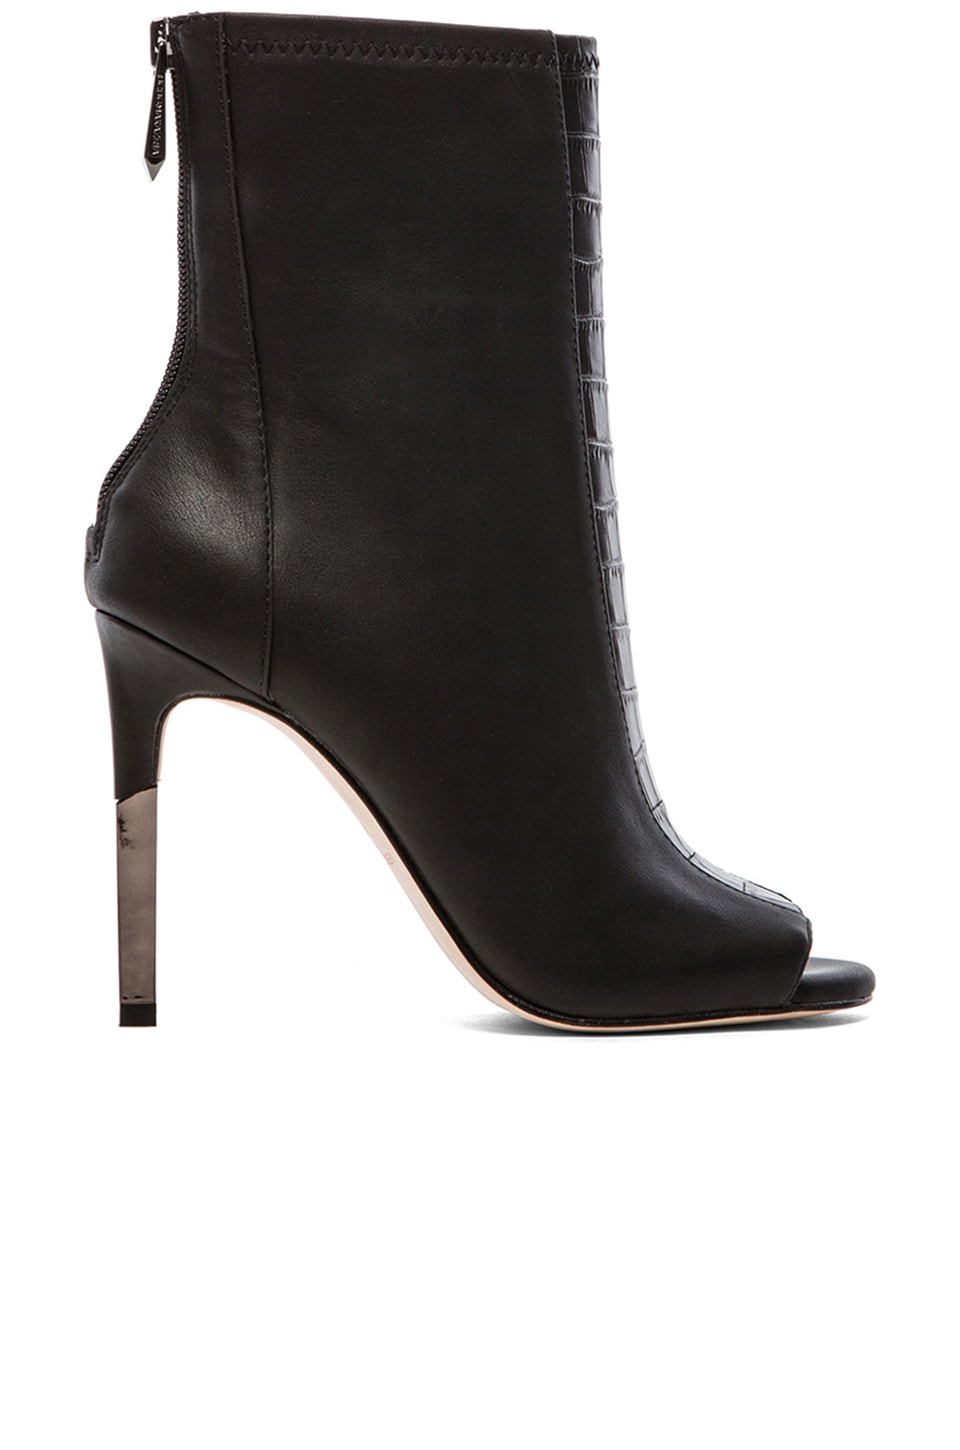 BCBGMAXAZRIA Jase Boot in Black